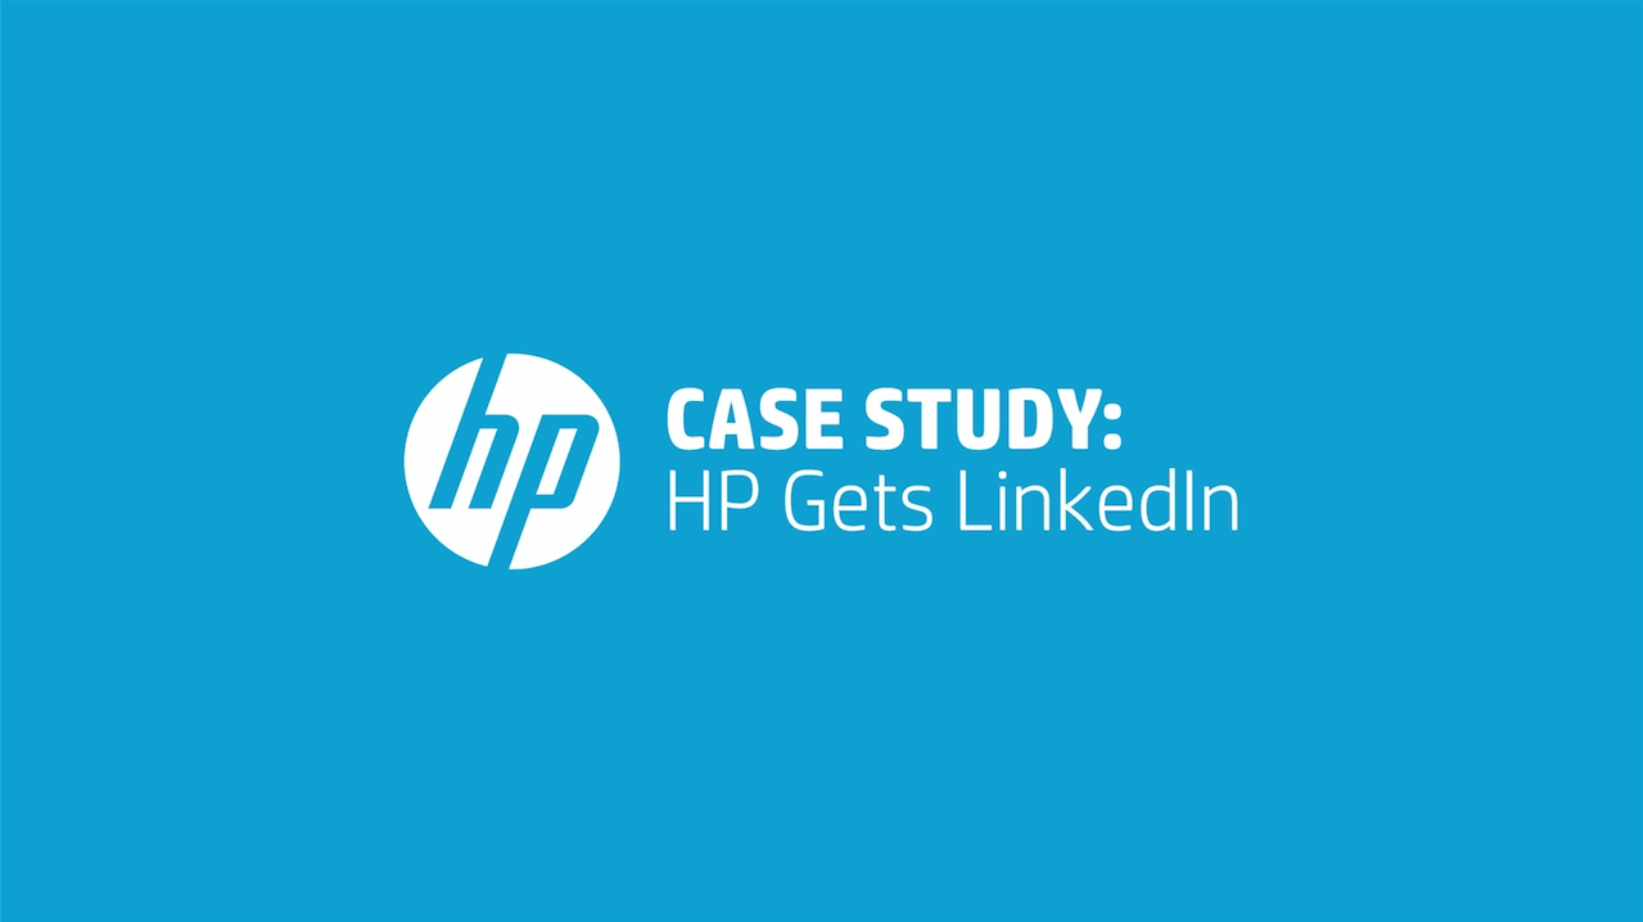 HP gets LinkedIn